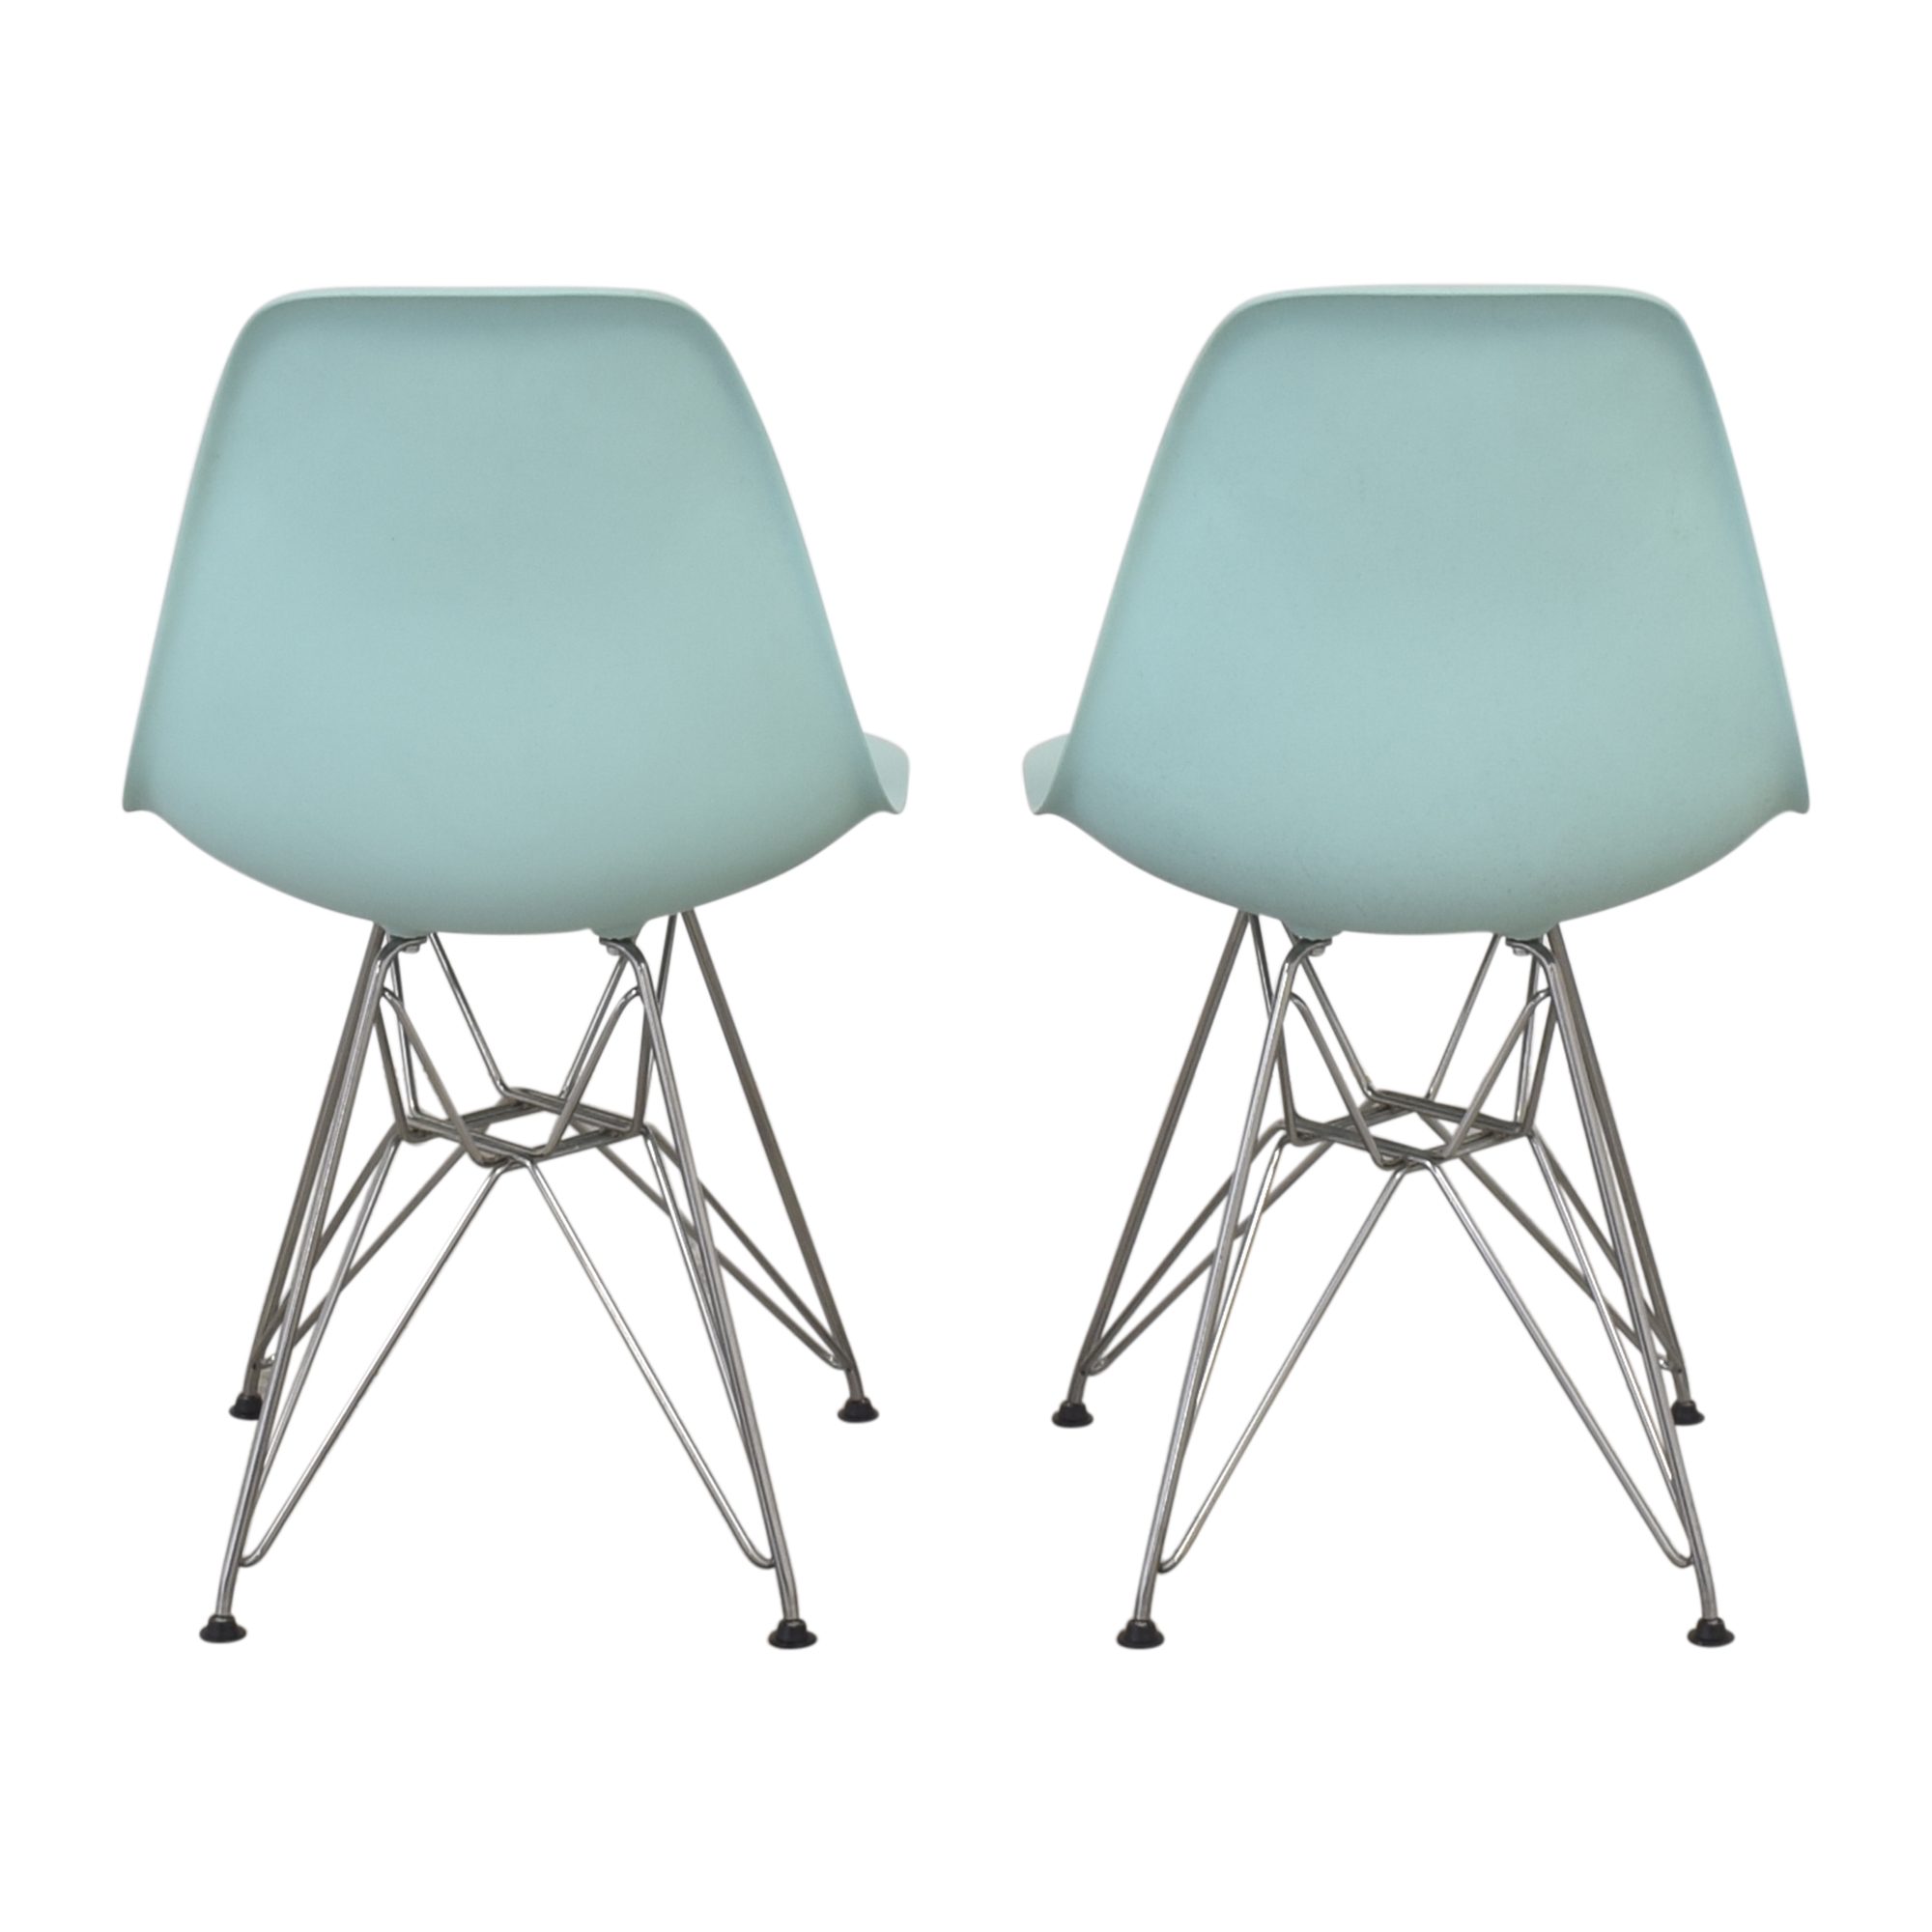 Herman Miller Herman Miller Eames Molded Plastic Wire-Base Side Chairs second hand